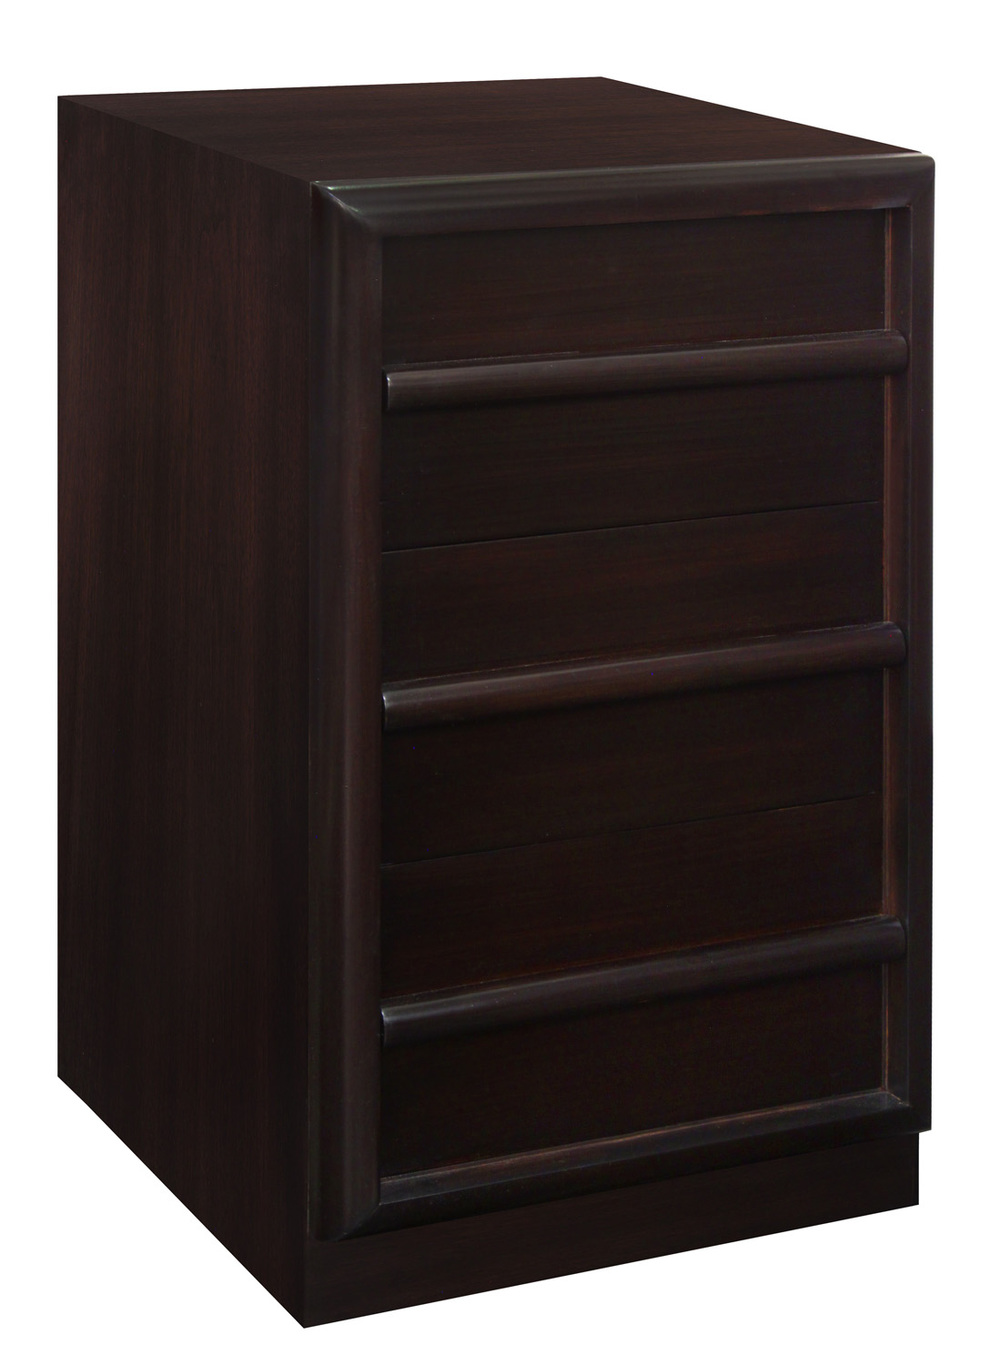 Gibbings 75 3 drwr dowel pull nightstands86 detail1 hires.jpg